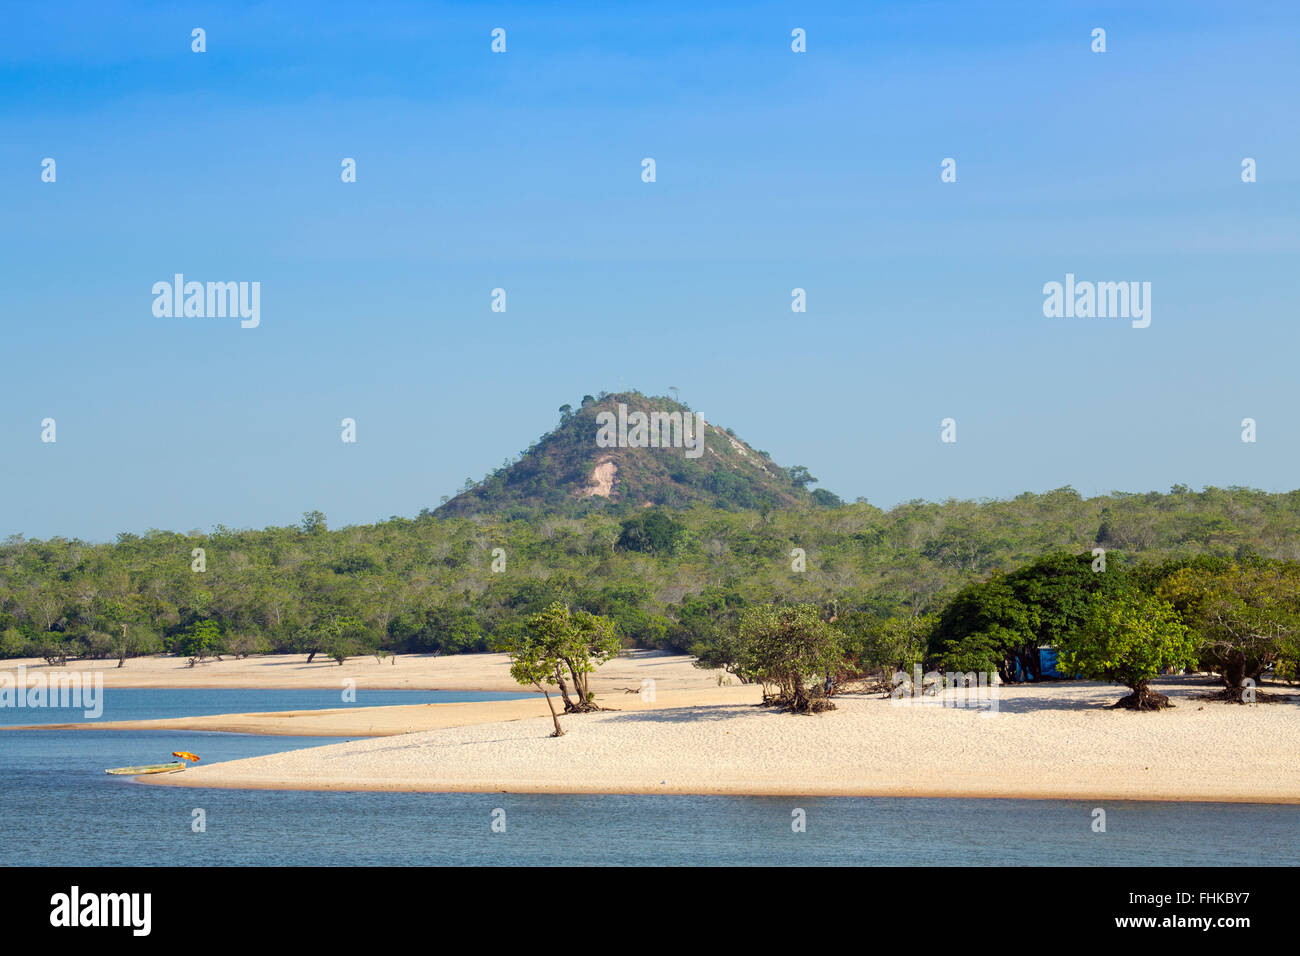 La Ilha do Amor (Love Island) y playa en Alter do Chao, Amazonia brasileña Imagen De Stock